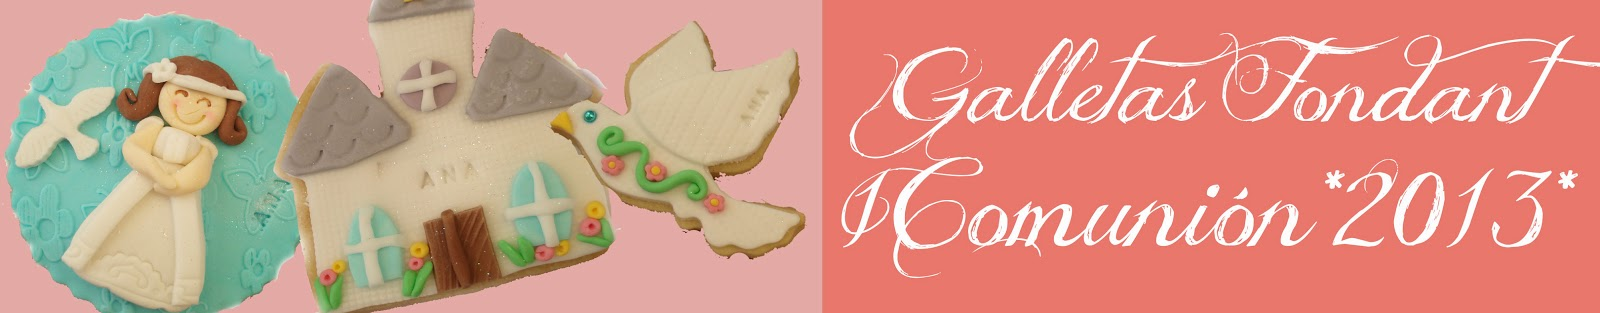 http://deliciaskawaii.blogspot.com.es/2013/05/galletas-de-comunion-2013-las-galletas.html